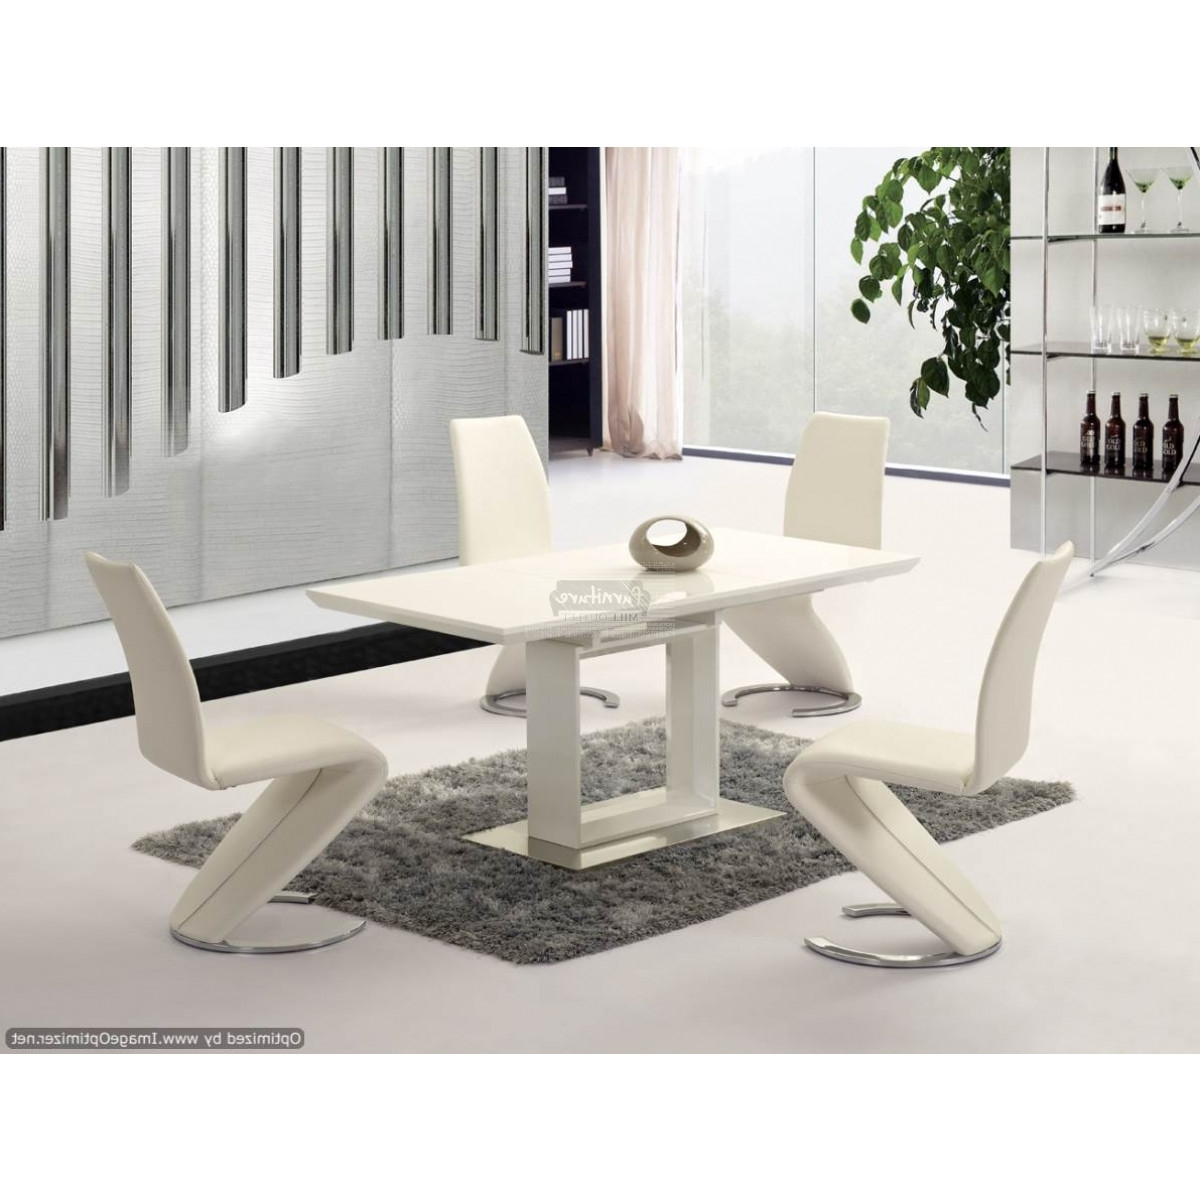 Space White High Gloss Extending Dining Table – 120Cm To 160Cm Inside Favorite White High Gloss Dining Tables (View 15 of 25)